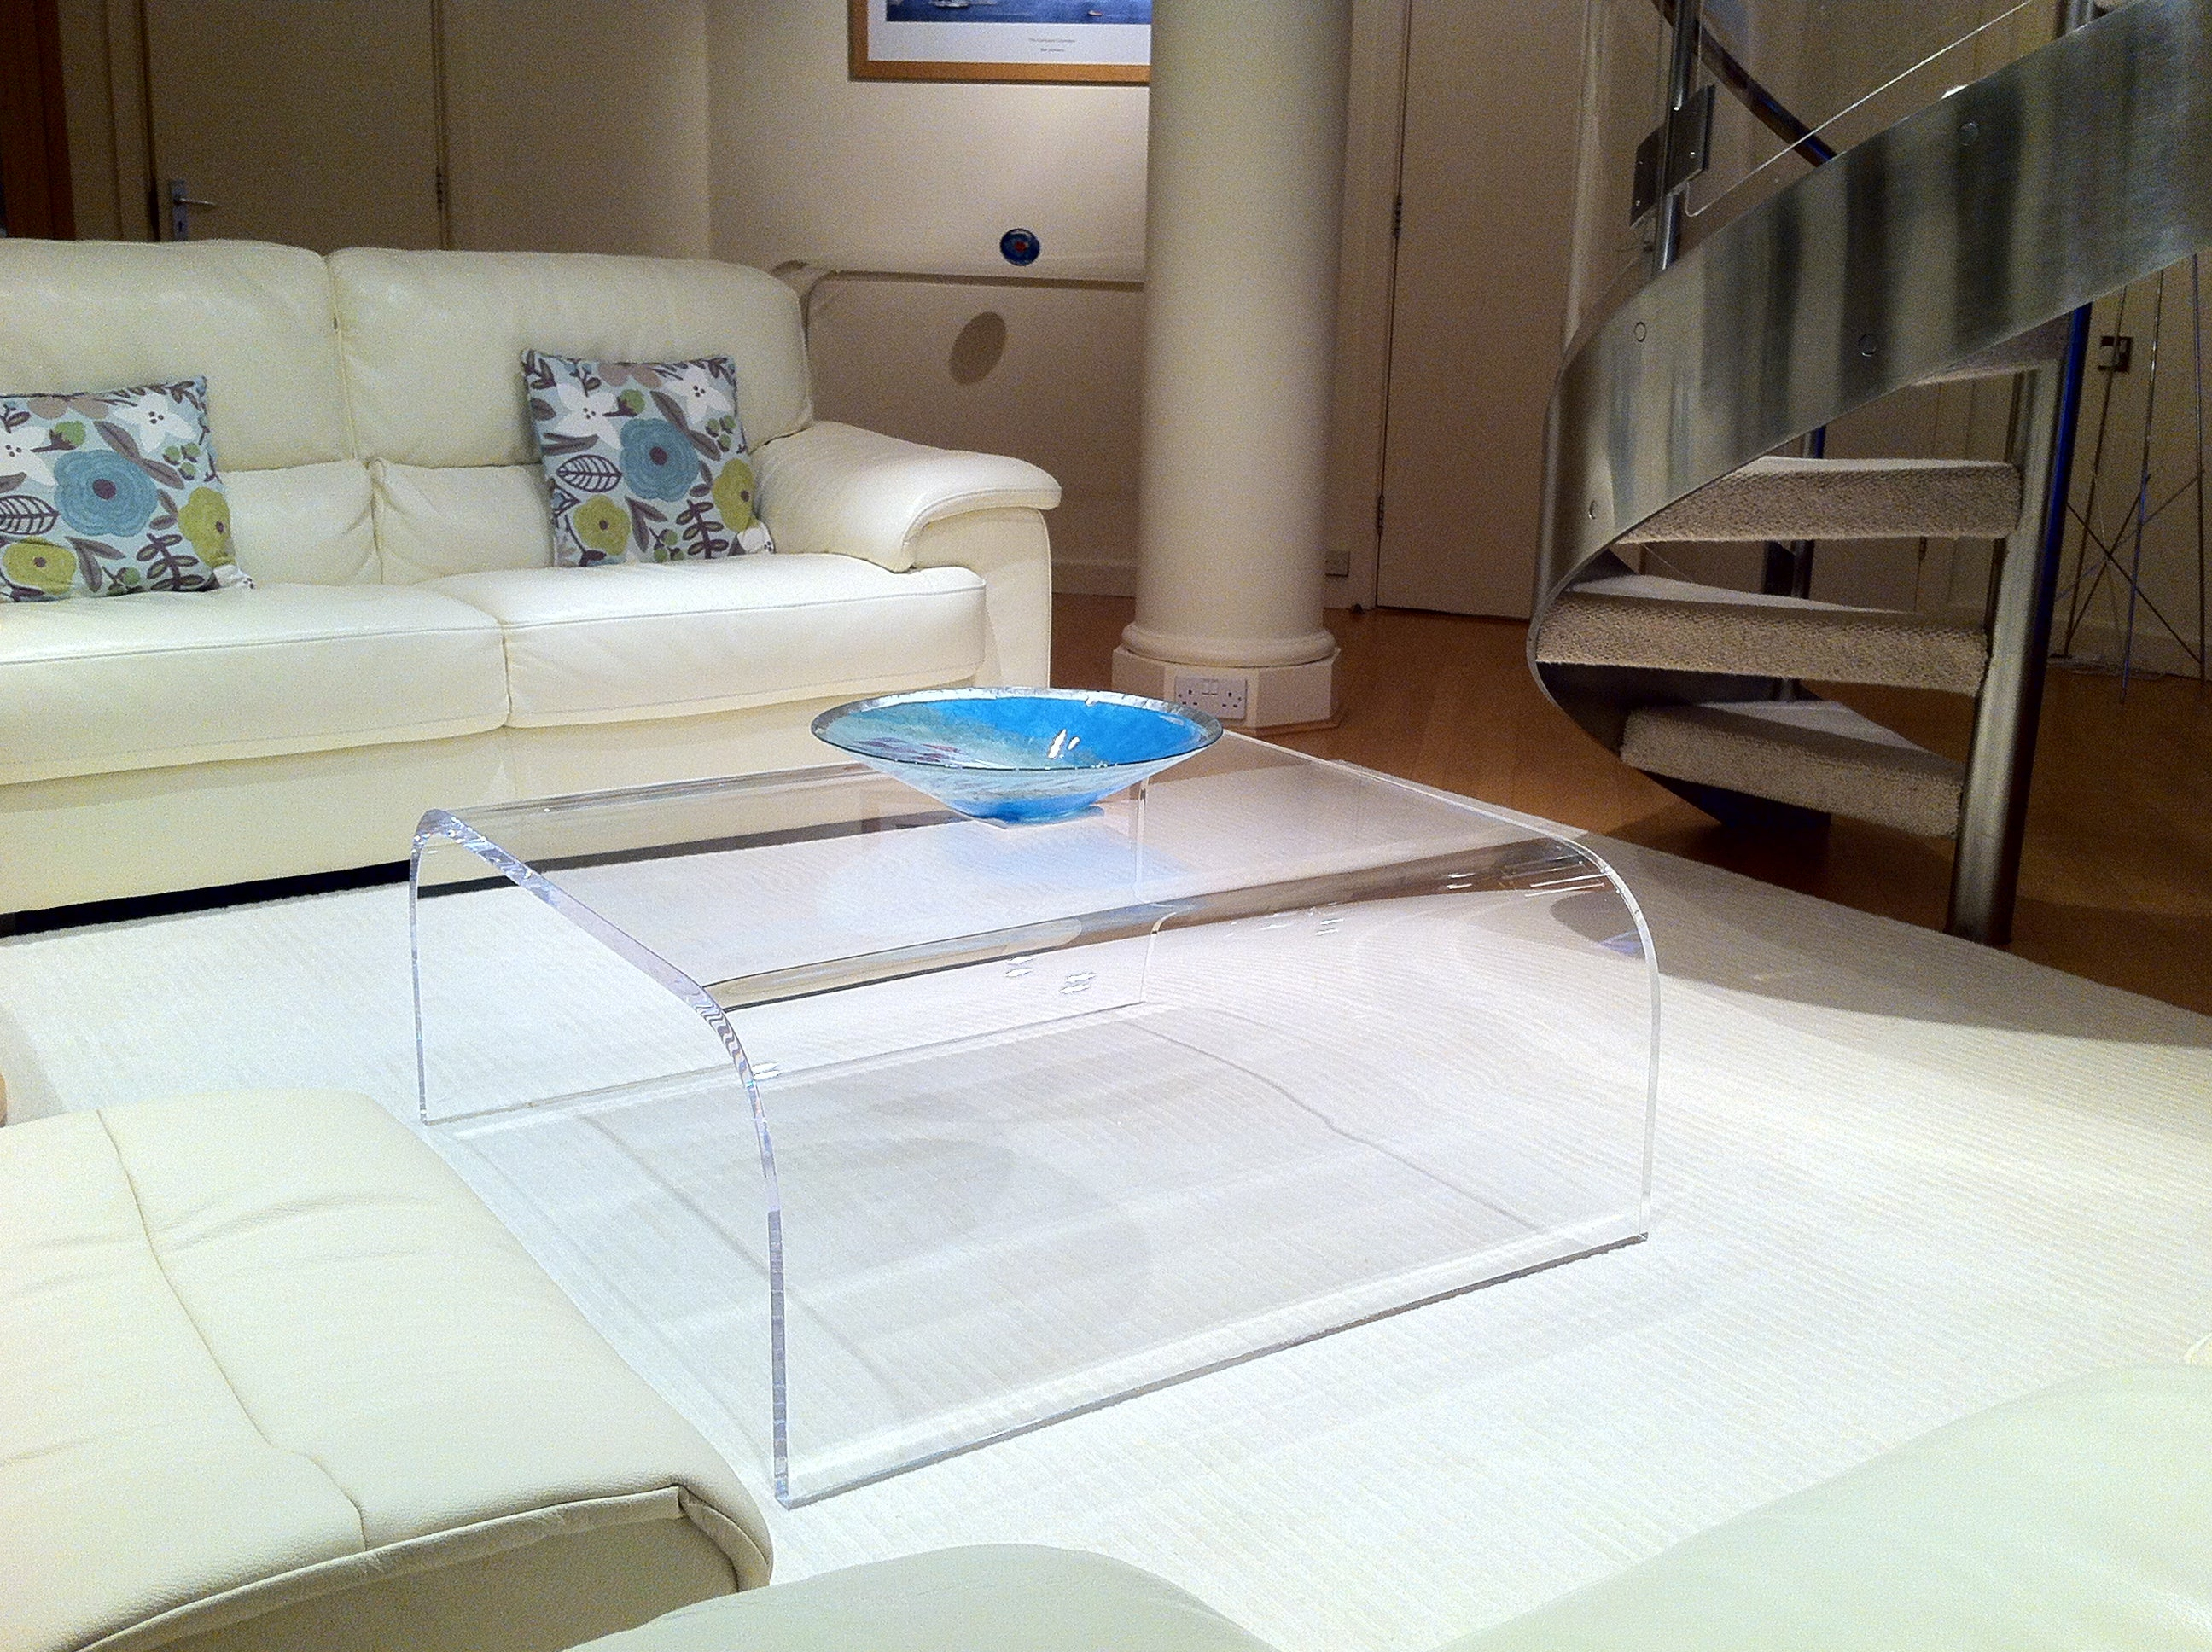 Ralph Marks Perspex \/ Acrylic Furniture UK — Acrylic Coffee Table UK